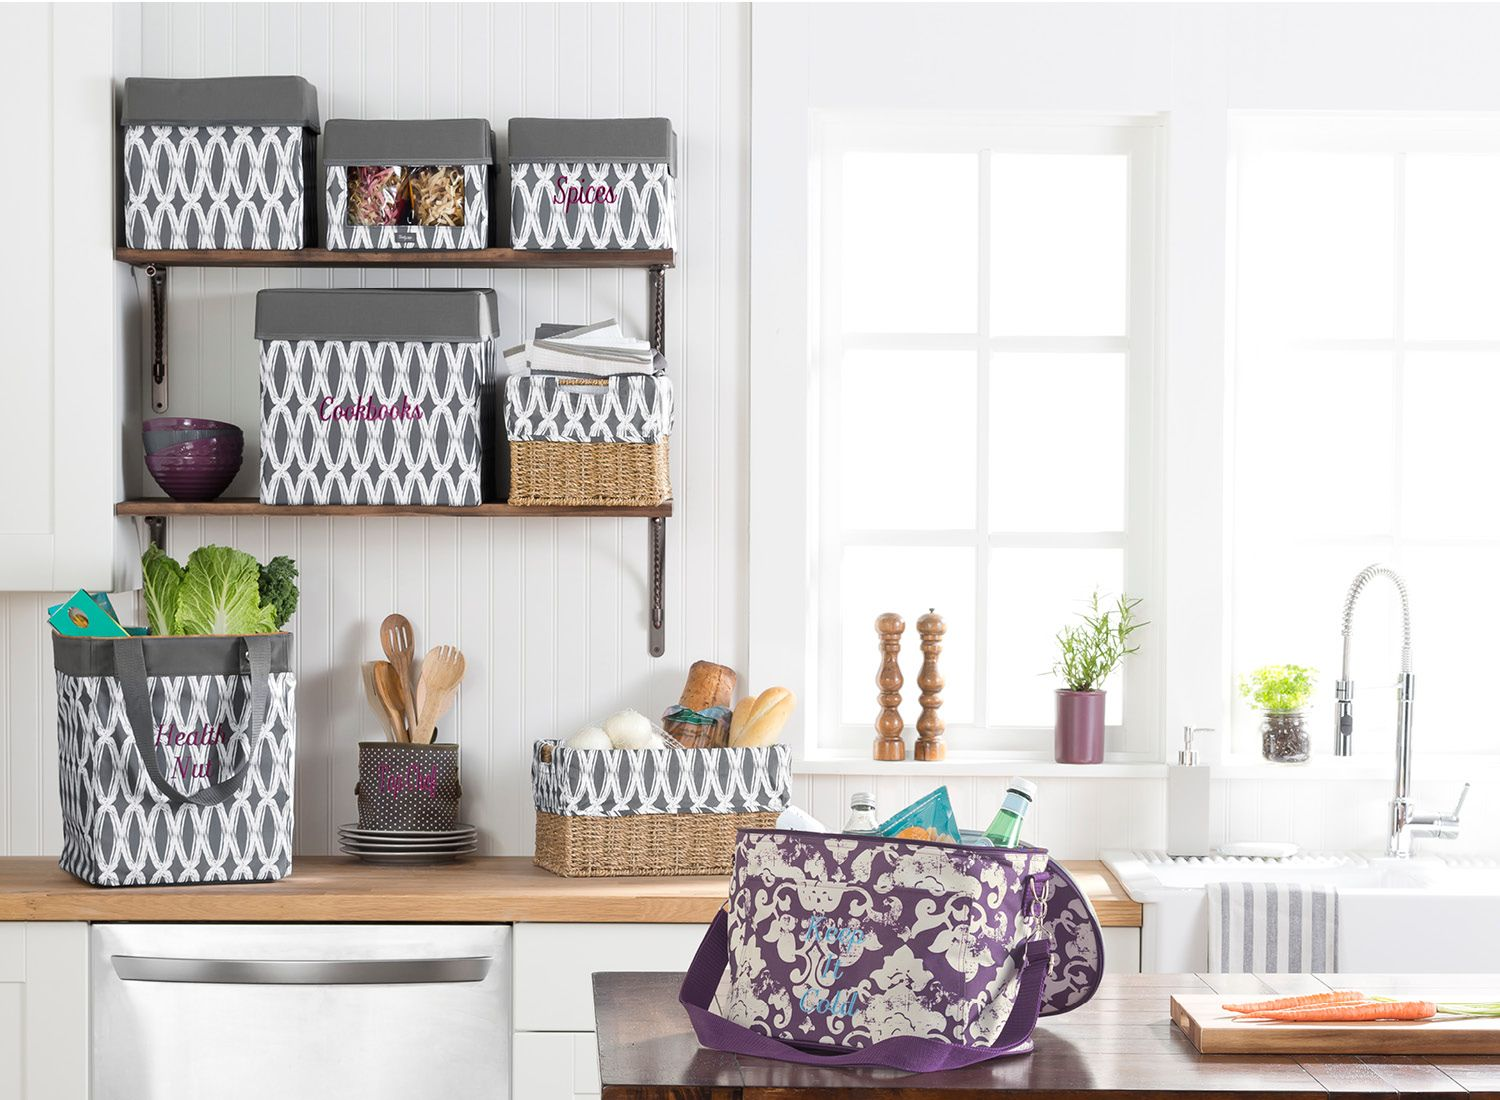 Use Your Way Cubes, Your Way Rectangles, U0026 You Way Rectangle Basket To  Bring Organization To Your Kitchen. Pictured: Family Fun Thermal In Vintage  Damask ...